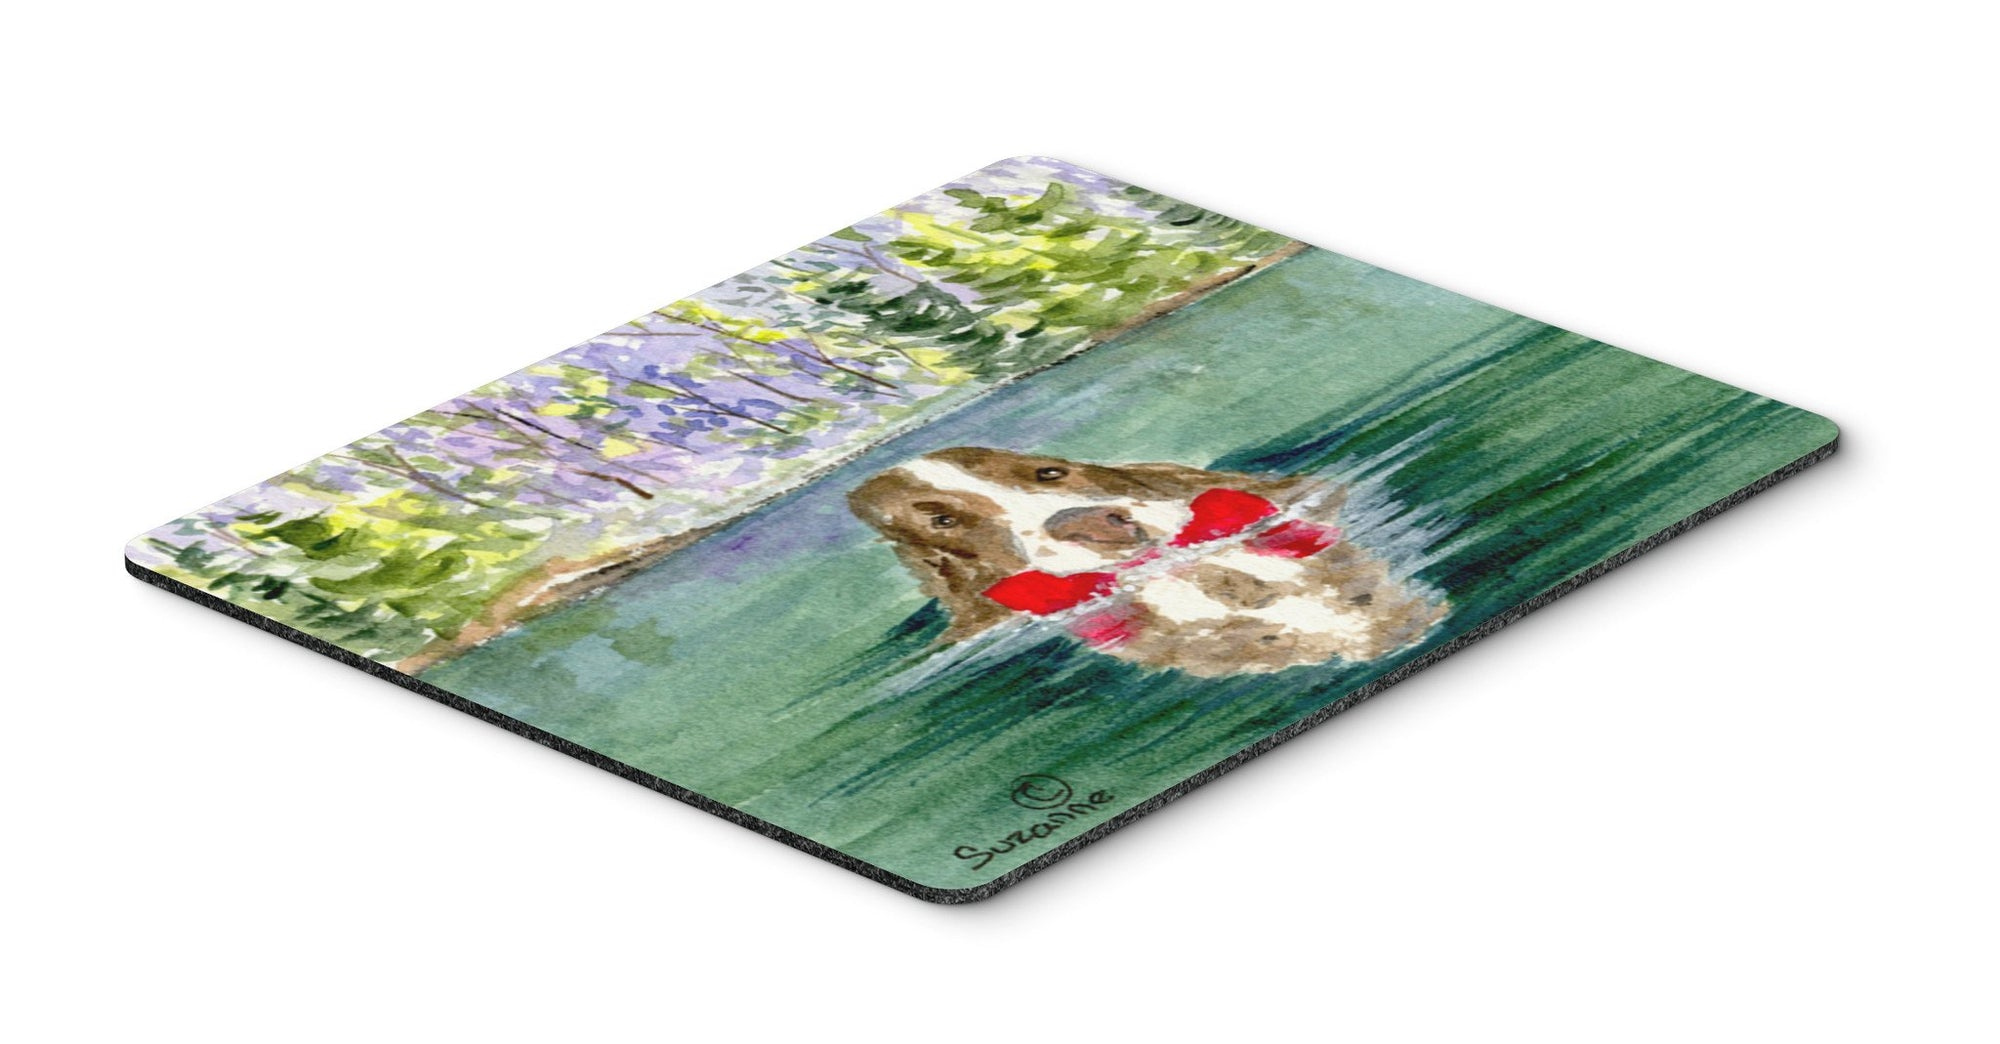 Springer Spaniel Mouse pad, hot pad, or trivet by Caroline's Treasures